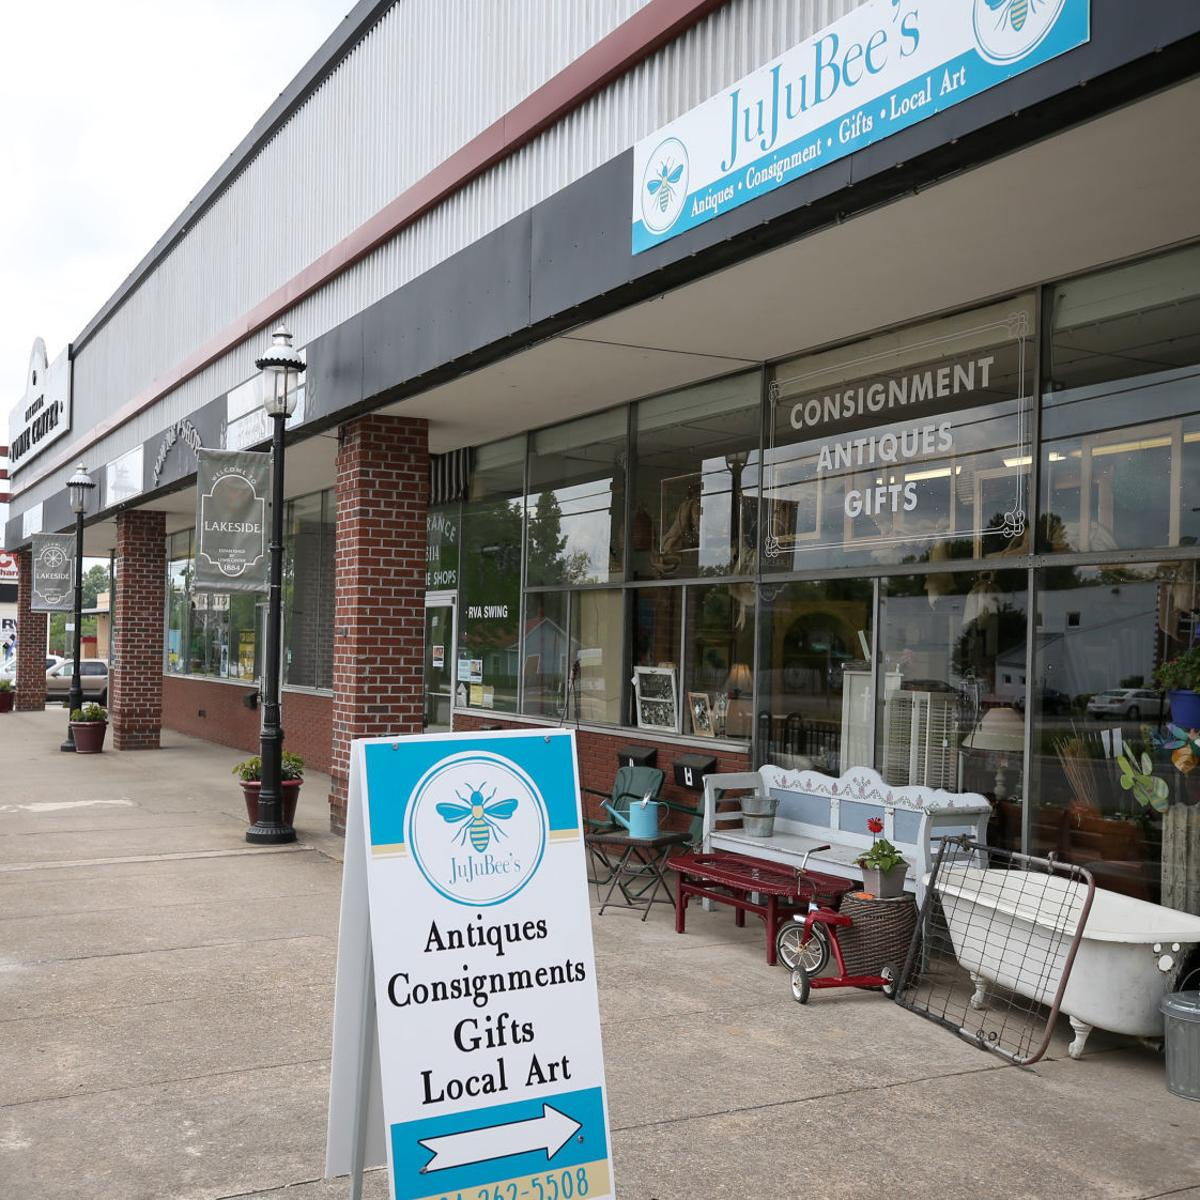 On a 1-mile stretch of Lakeside, 5 uncommon home décor shops dot the